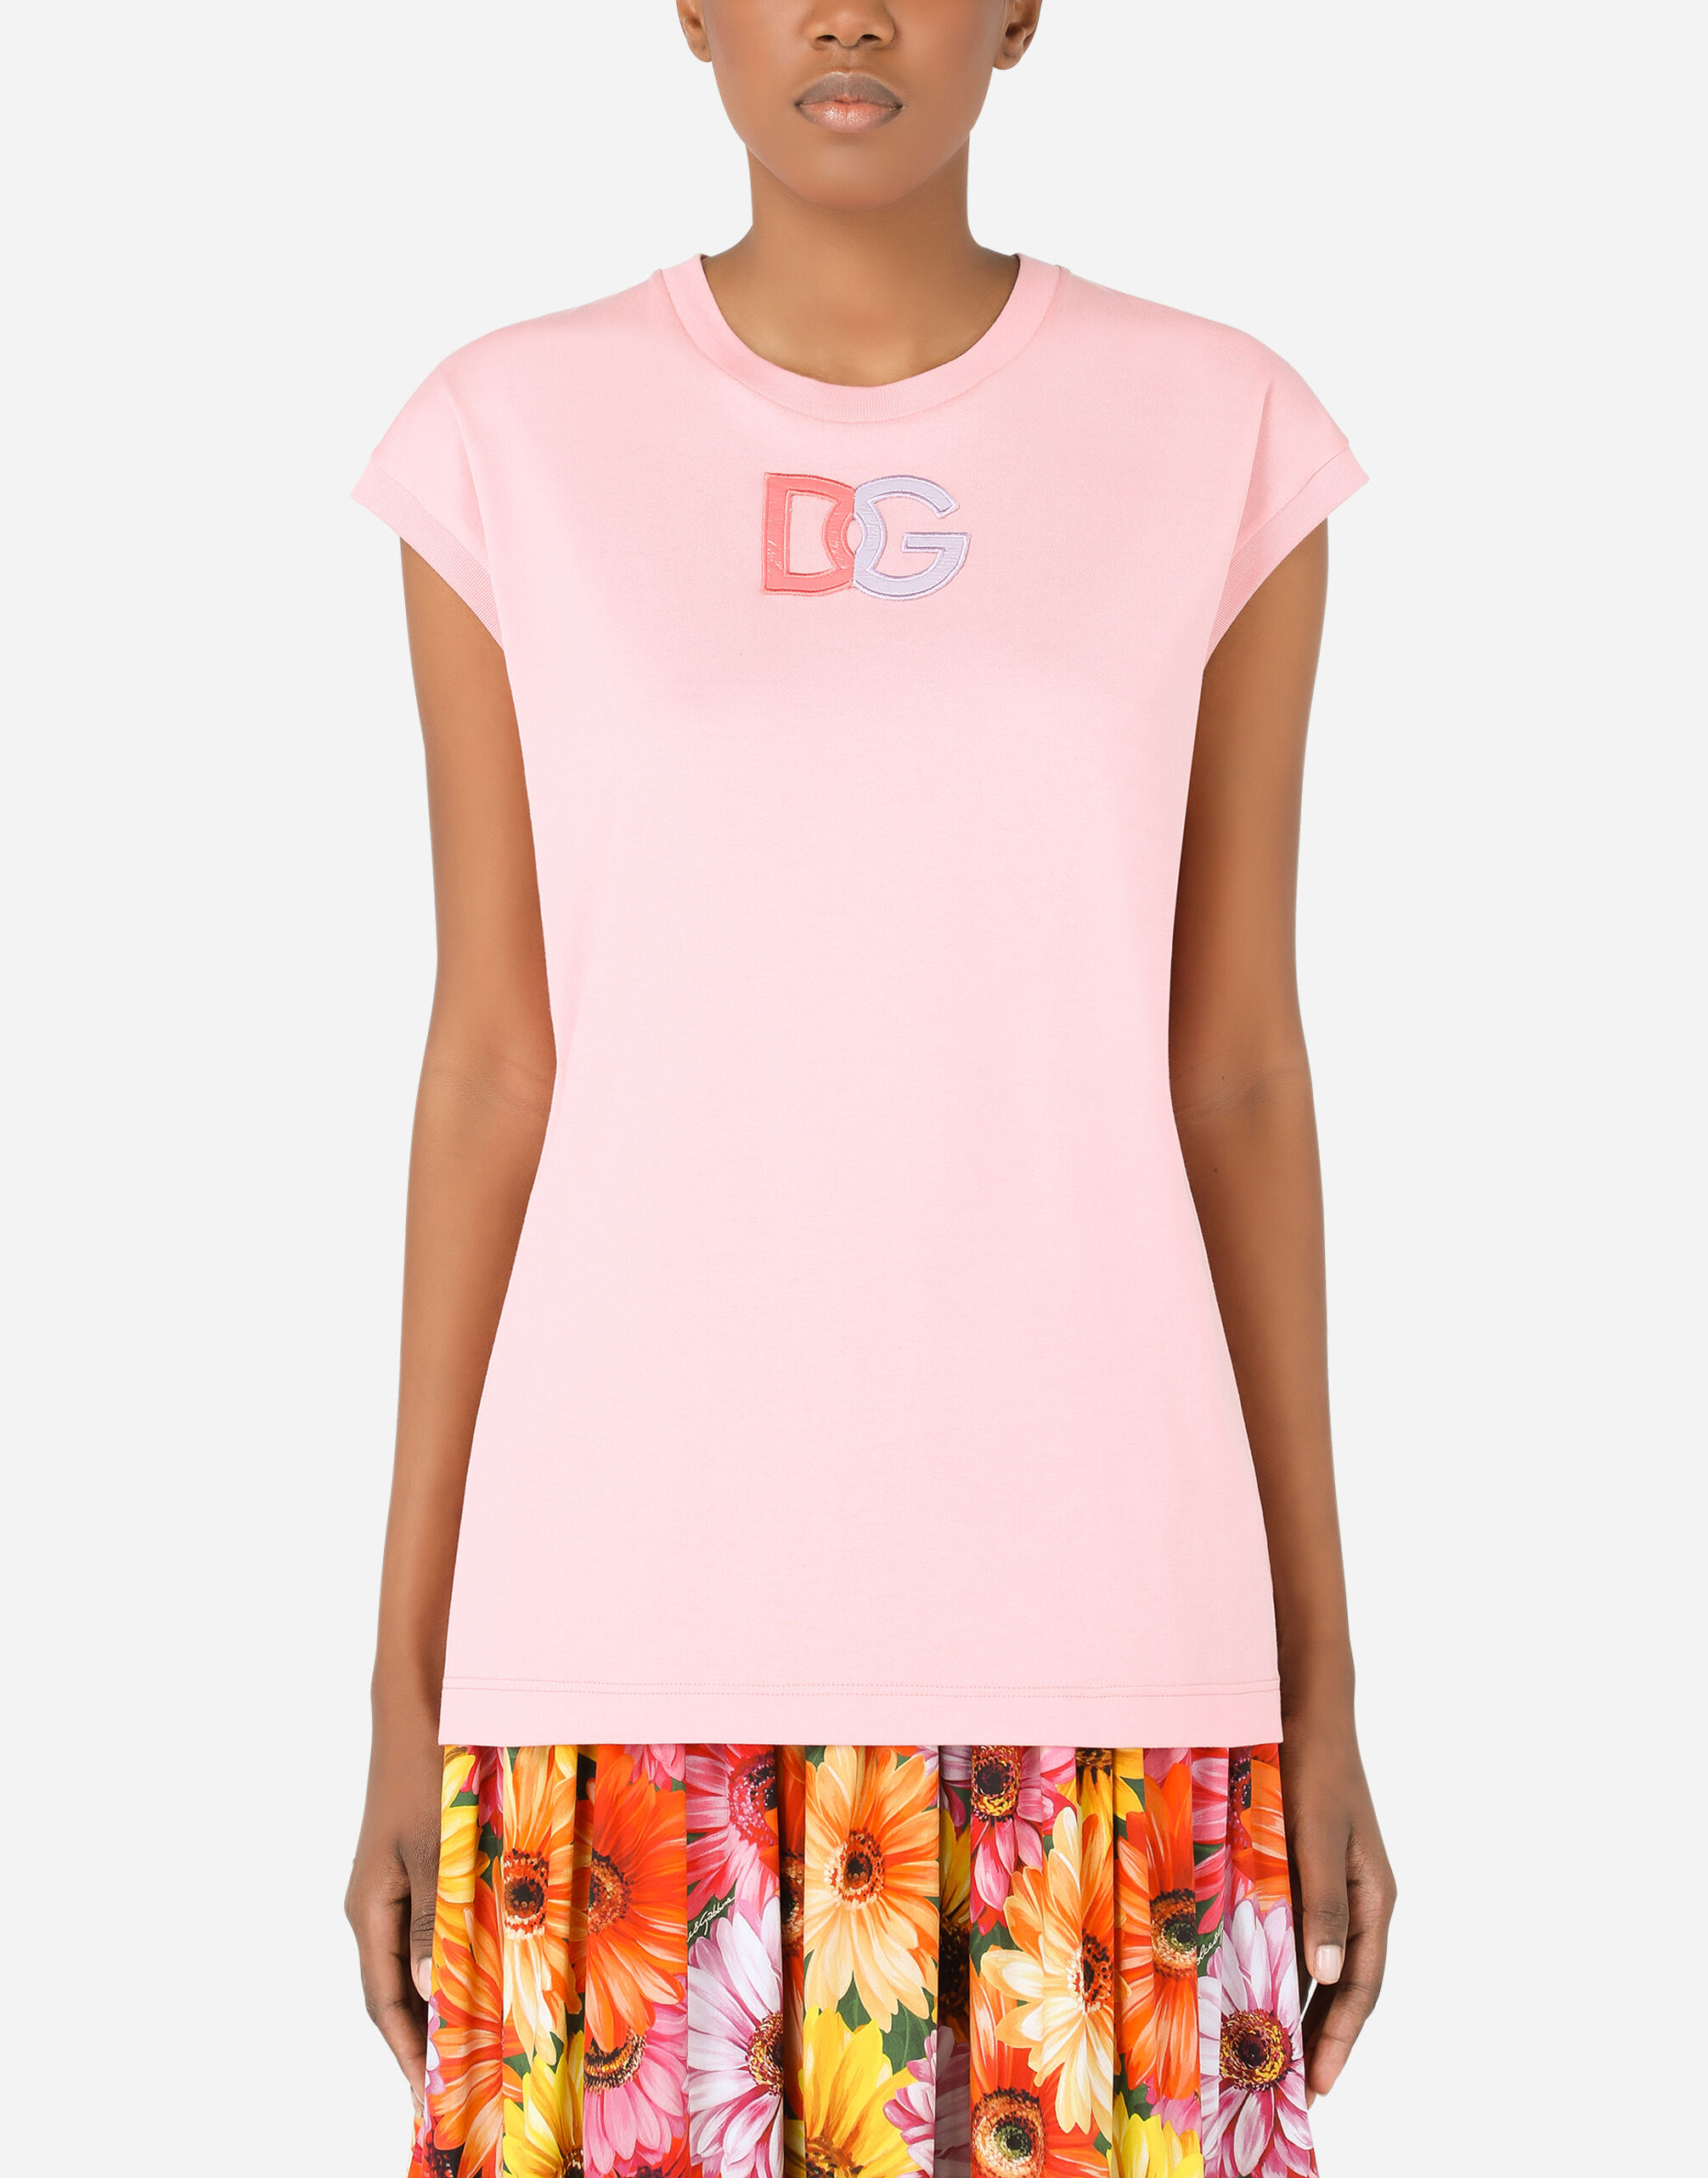 T-shirt in jersey con patch dolce & gabbana in vernice